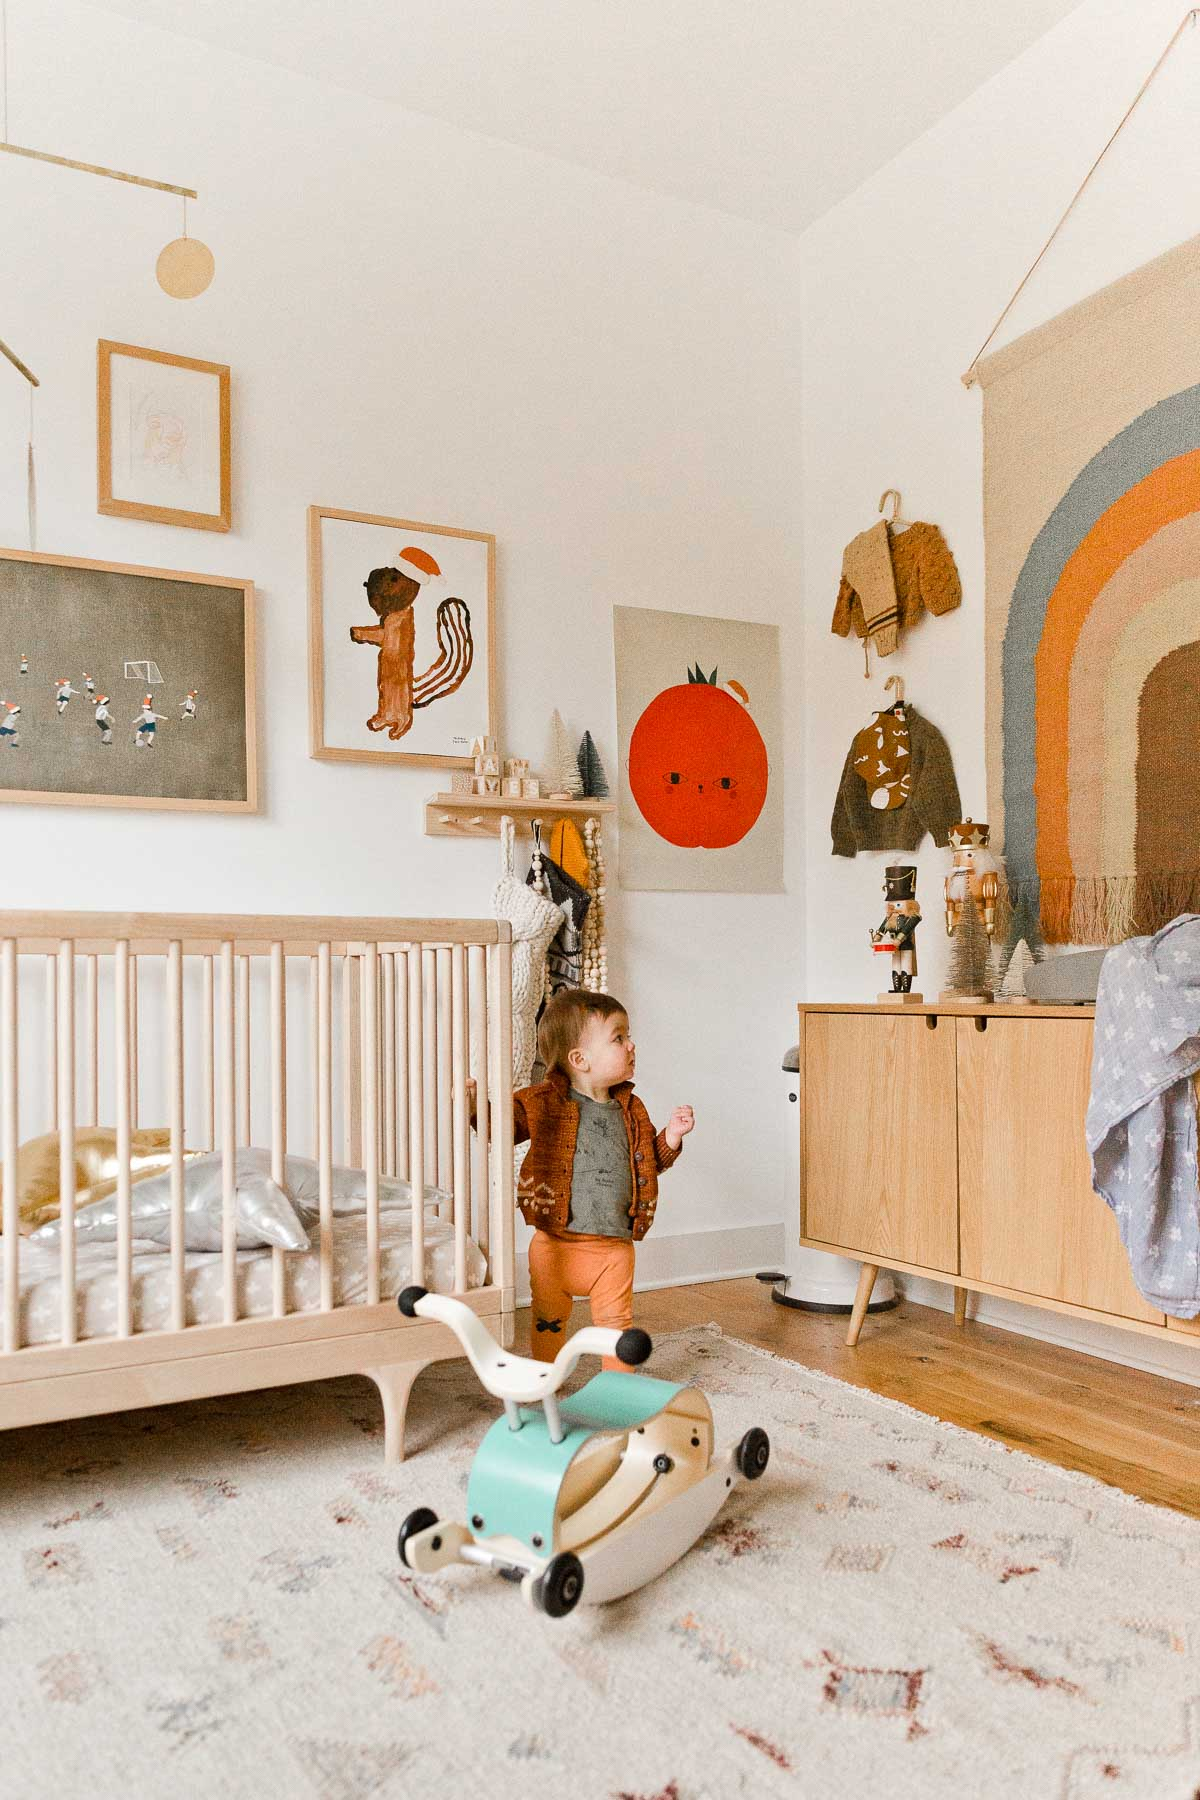 A simple, neutral nursery with a few holiday touches - stockings hanging from a peg rail, nutcrackers on the changing table, Santa hats on the artwork, etc.